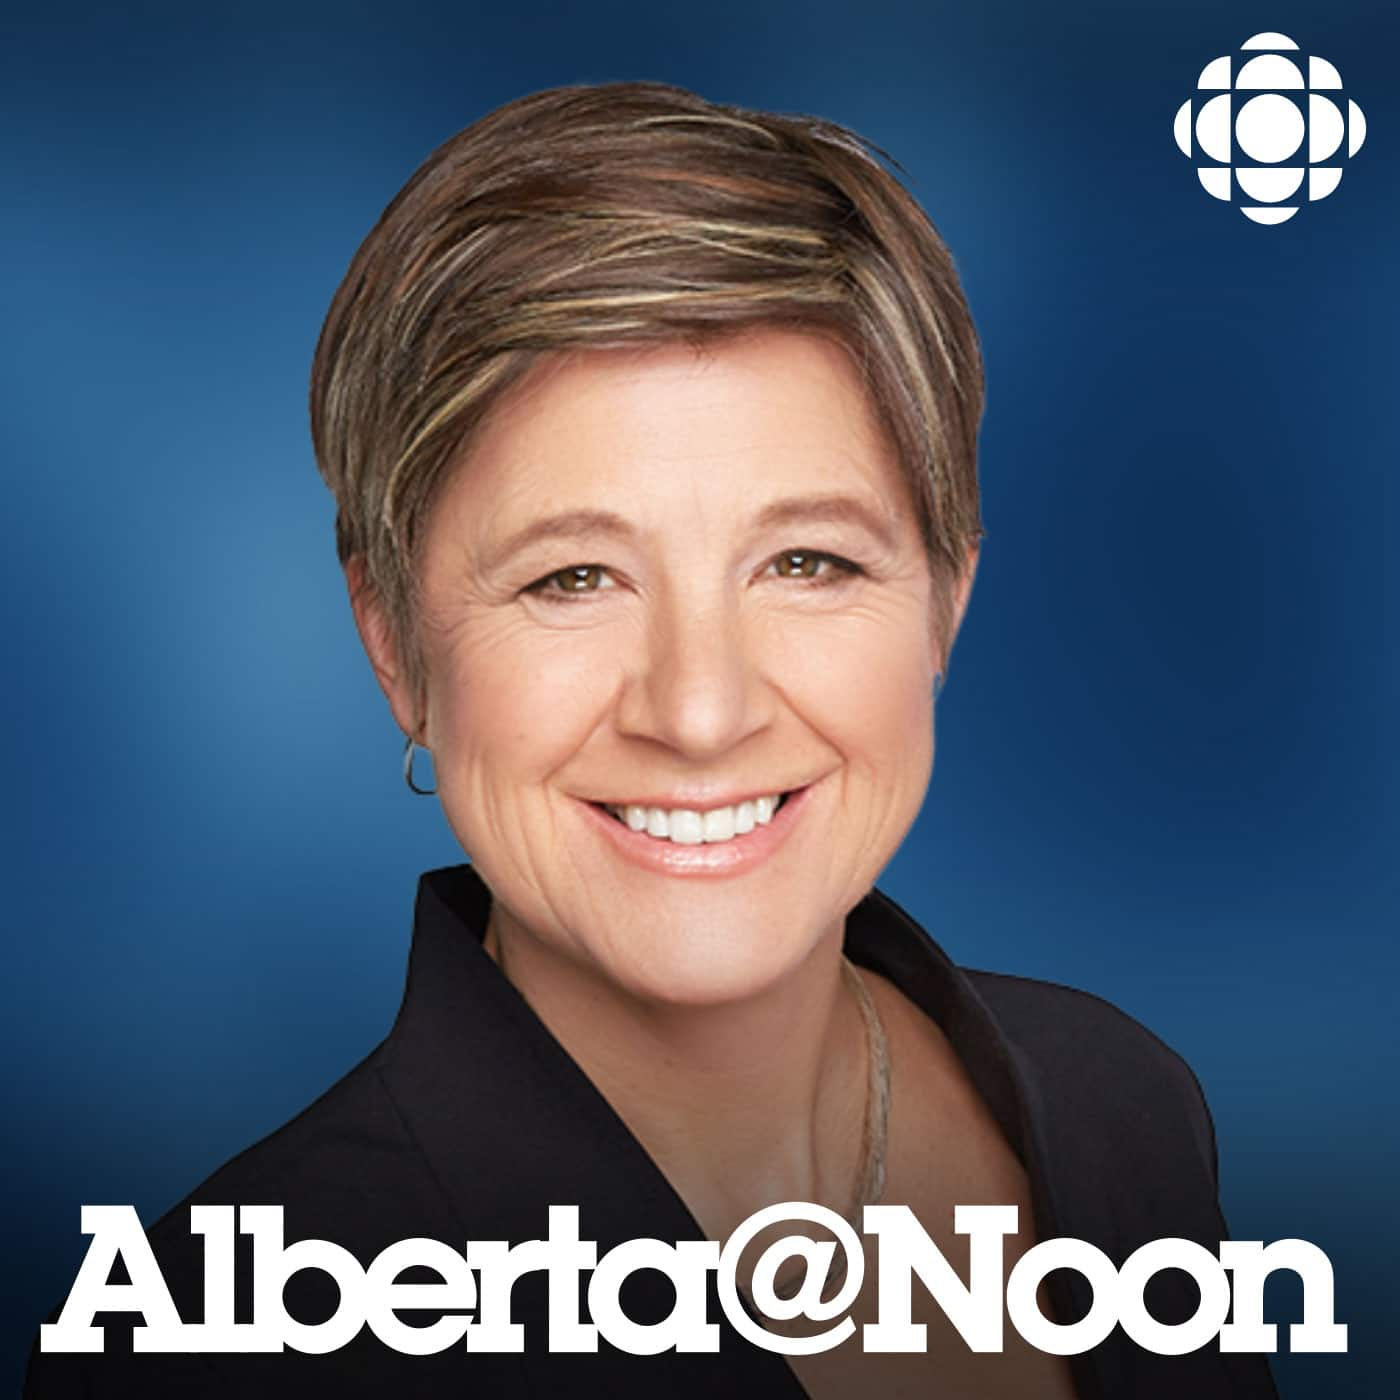 alberta@noon from CBC Radio (Highlights)